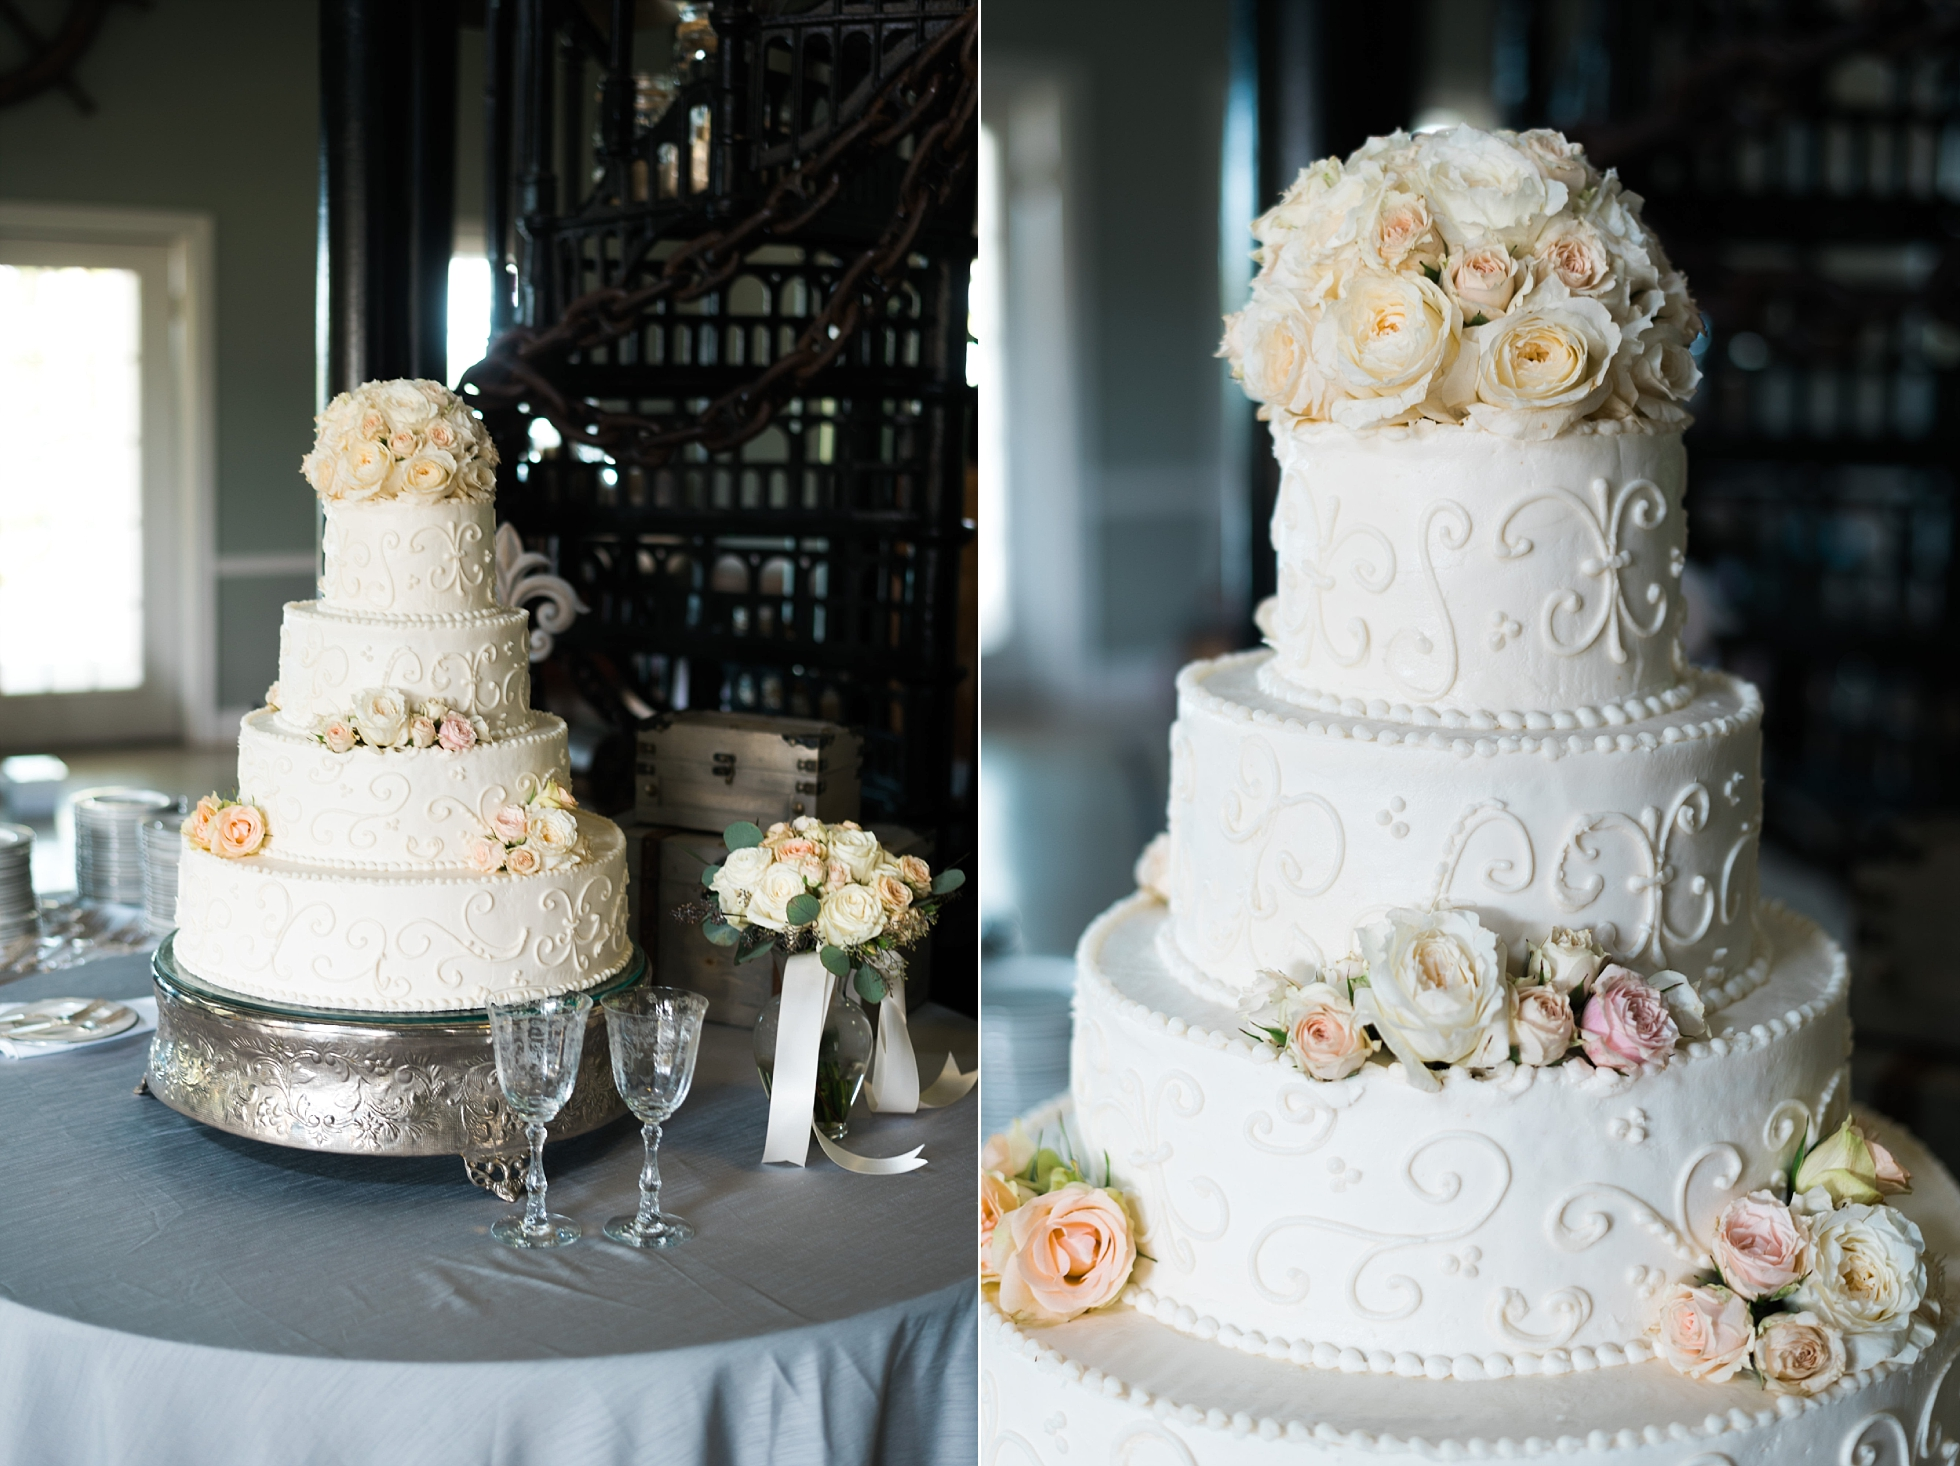 Traditional Wedding Cake with Flowers | Kyle & Erin | Scarbrough Wedding | Children's Harbor | Laura Wilkerson Photography